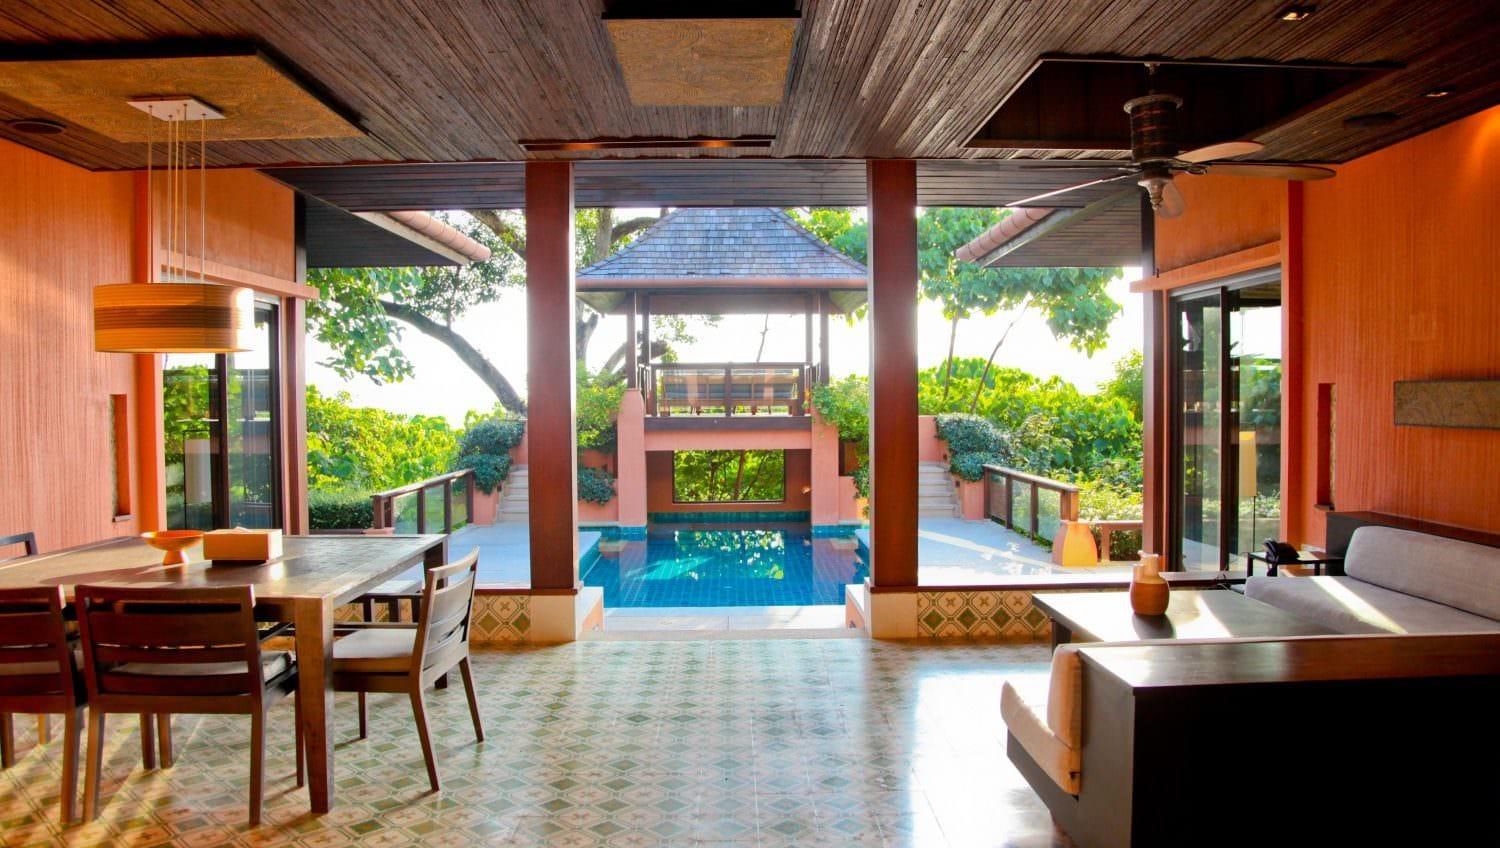 4-Two-Bedroom-Family-Suite-Garden-View-Sri-Panwa-Luxury-Pool-Villa-Hotel-Phuket-Resort-Spa